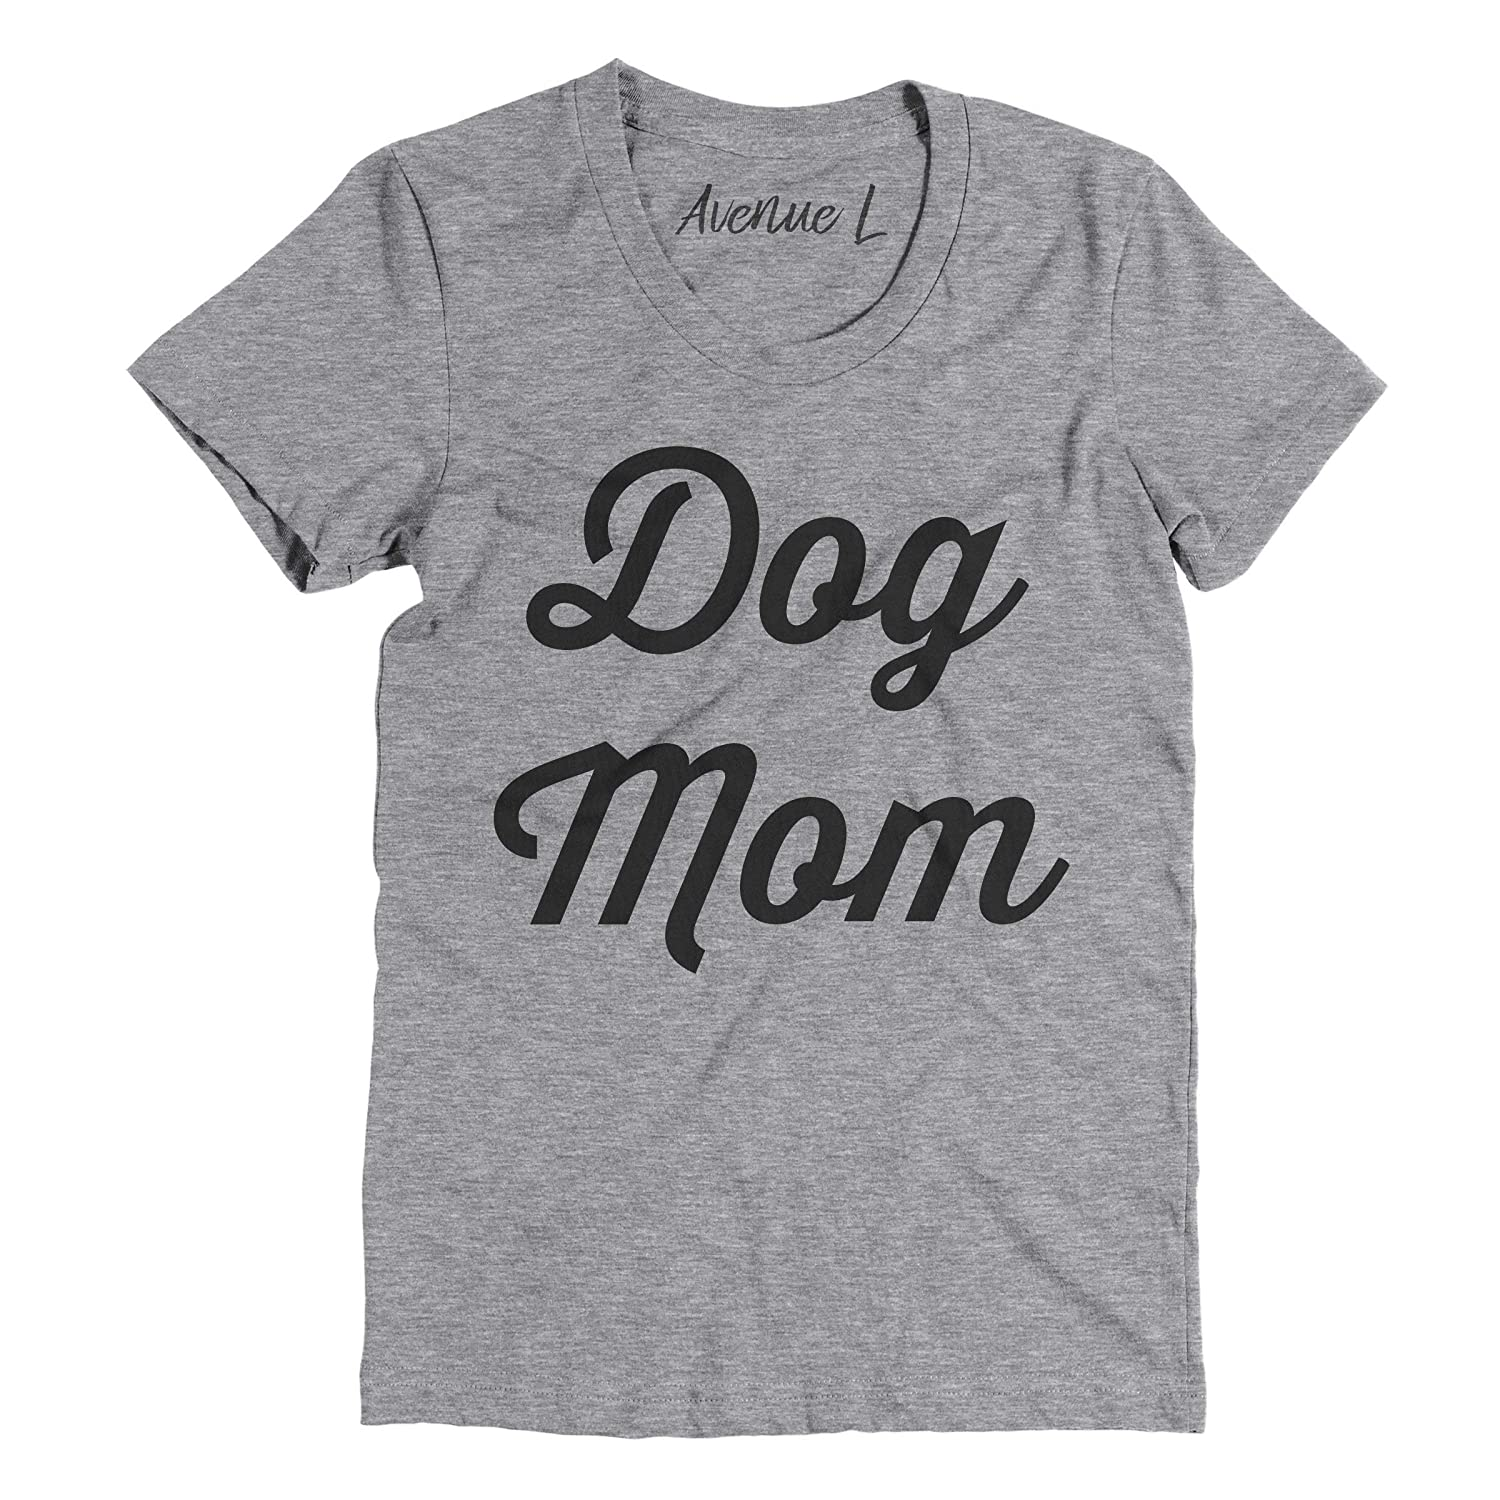 Dog Mom Shirt - Womens Graphic Tee